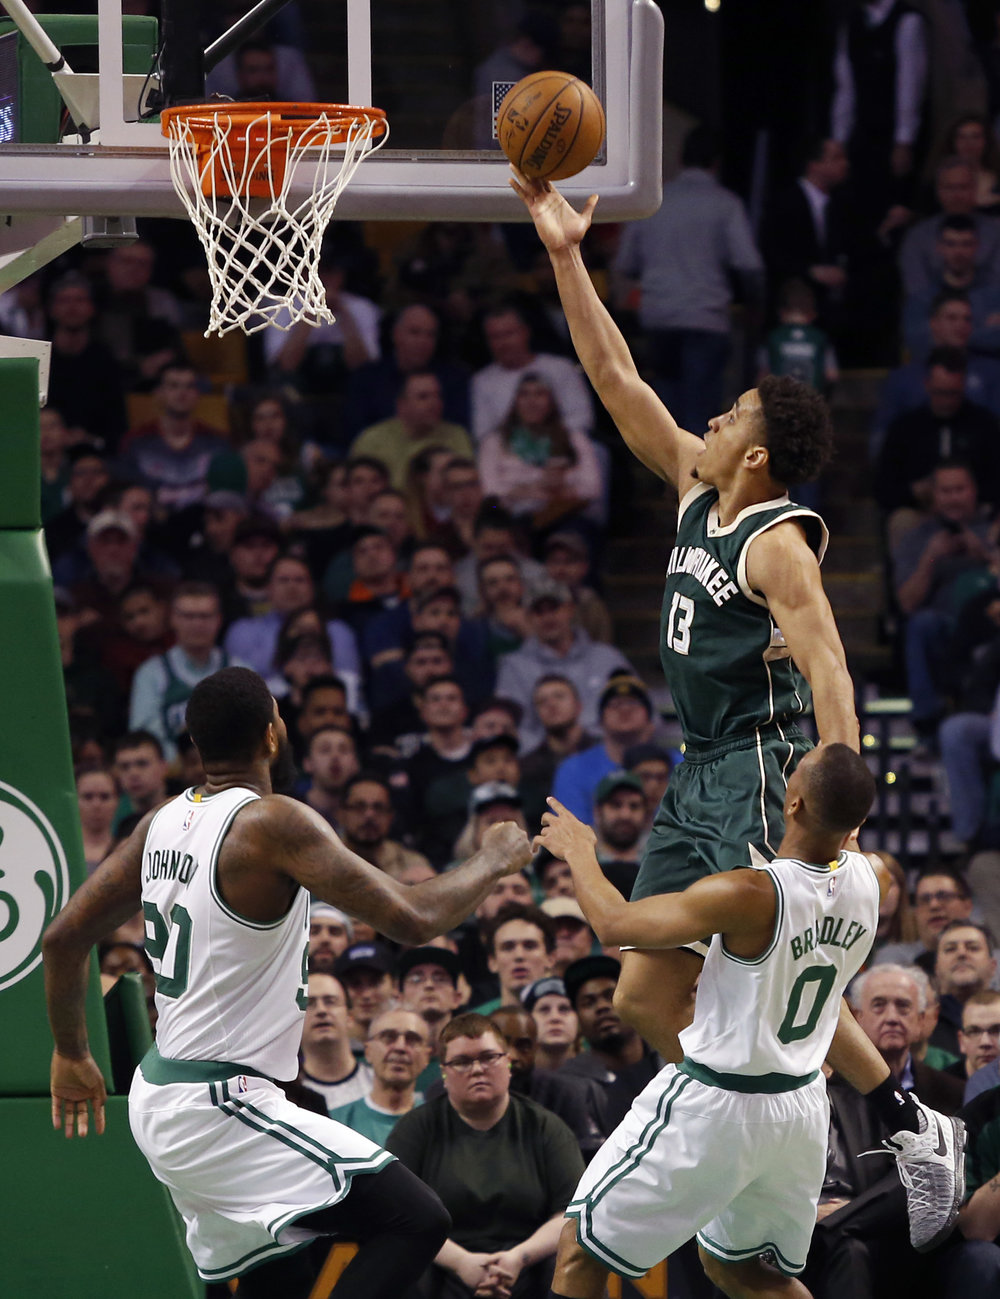 Milwaukee Bucks guard Malcolm Brogdon (13) puts up a shot ahead of Boston Celtics forward Amir Johnson (90) and Avery Bradley (0) during the first half of an NBA basketball game, Wednesday, March 29, 2017, in Boston. (Mary Schwalm/AP)